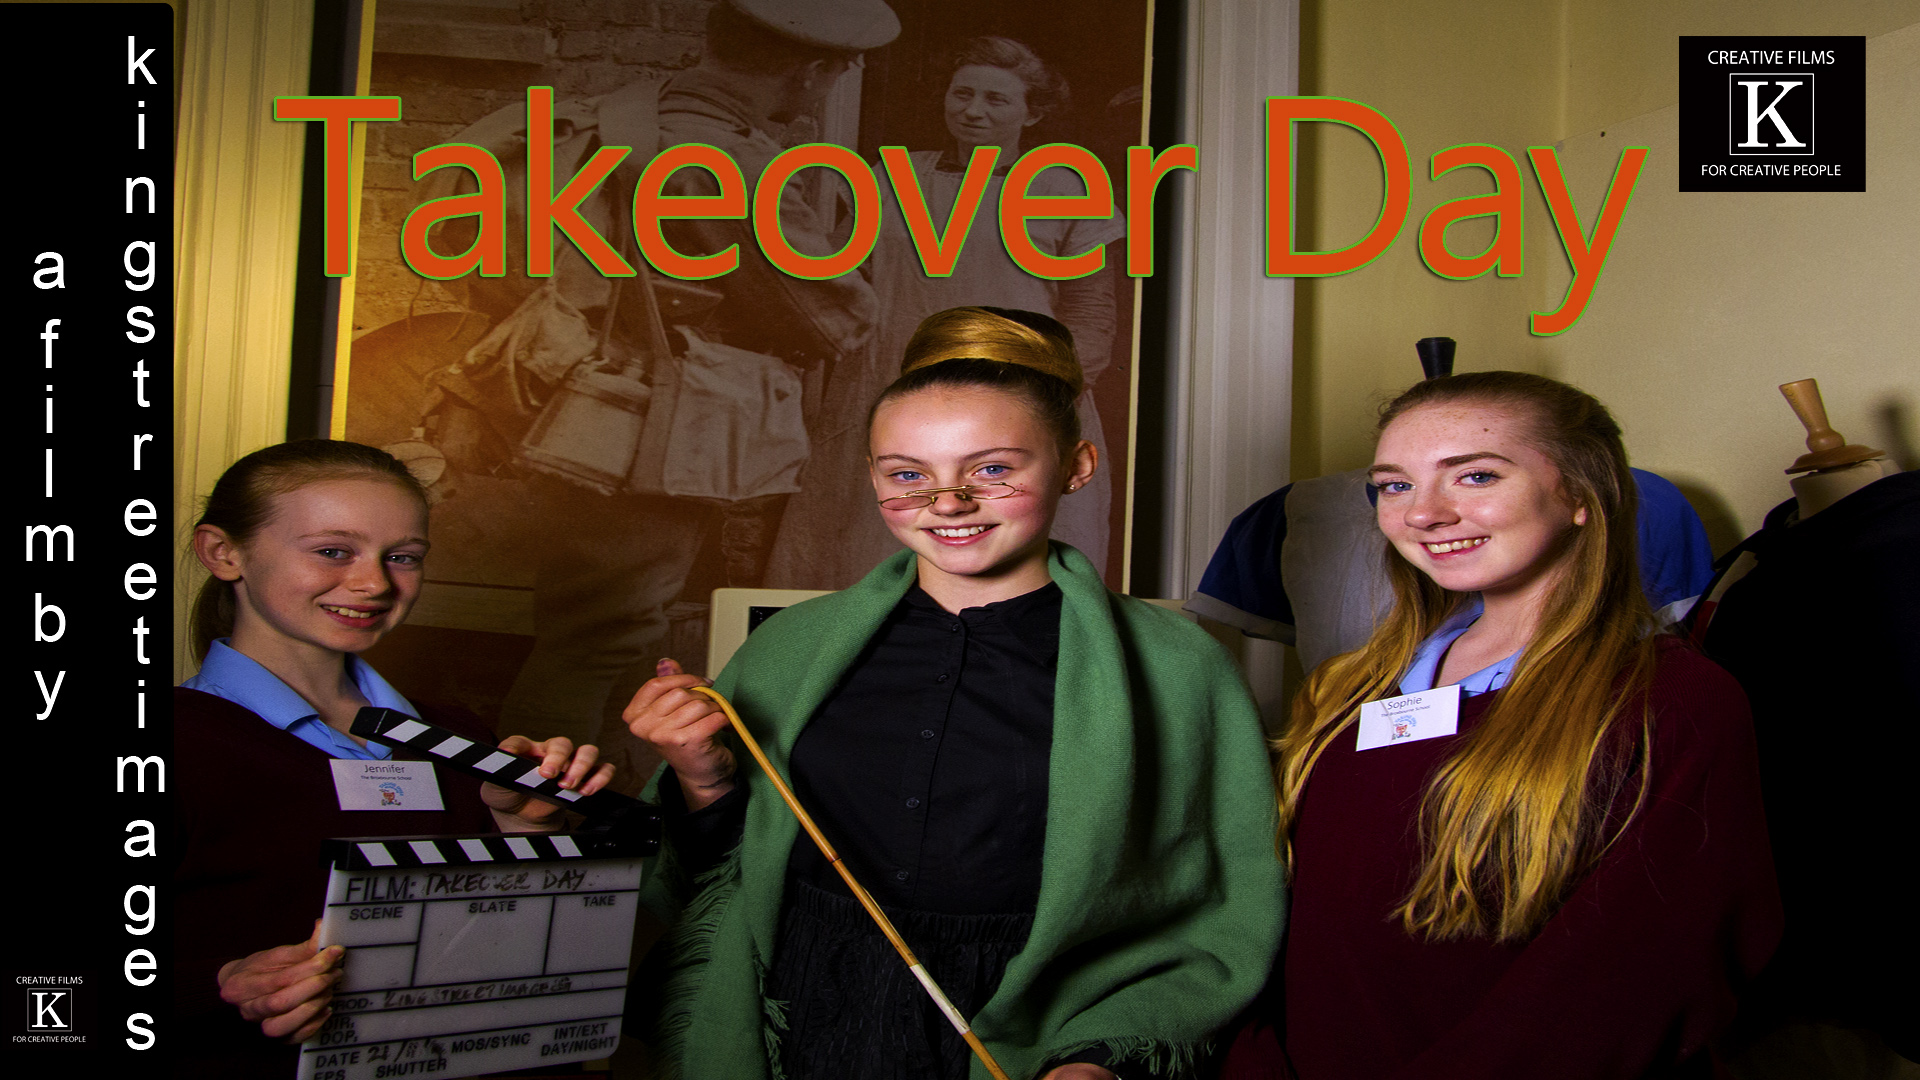 Kids takeover museum for Takeover Day